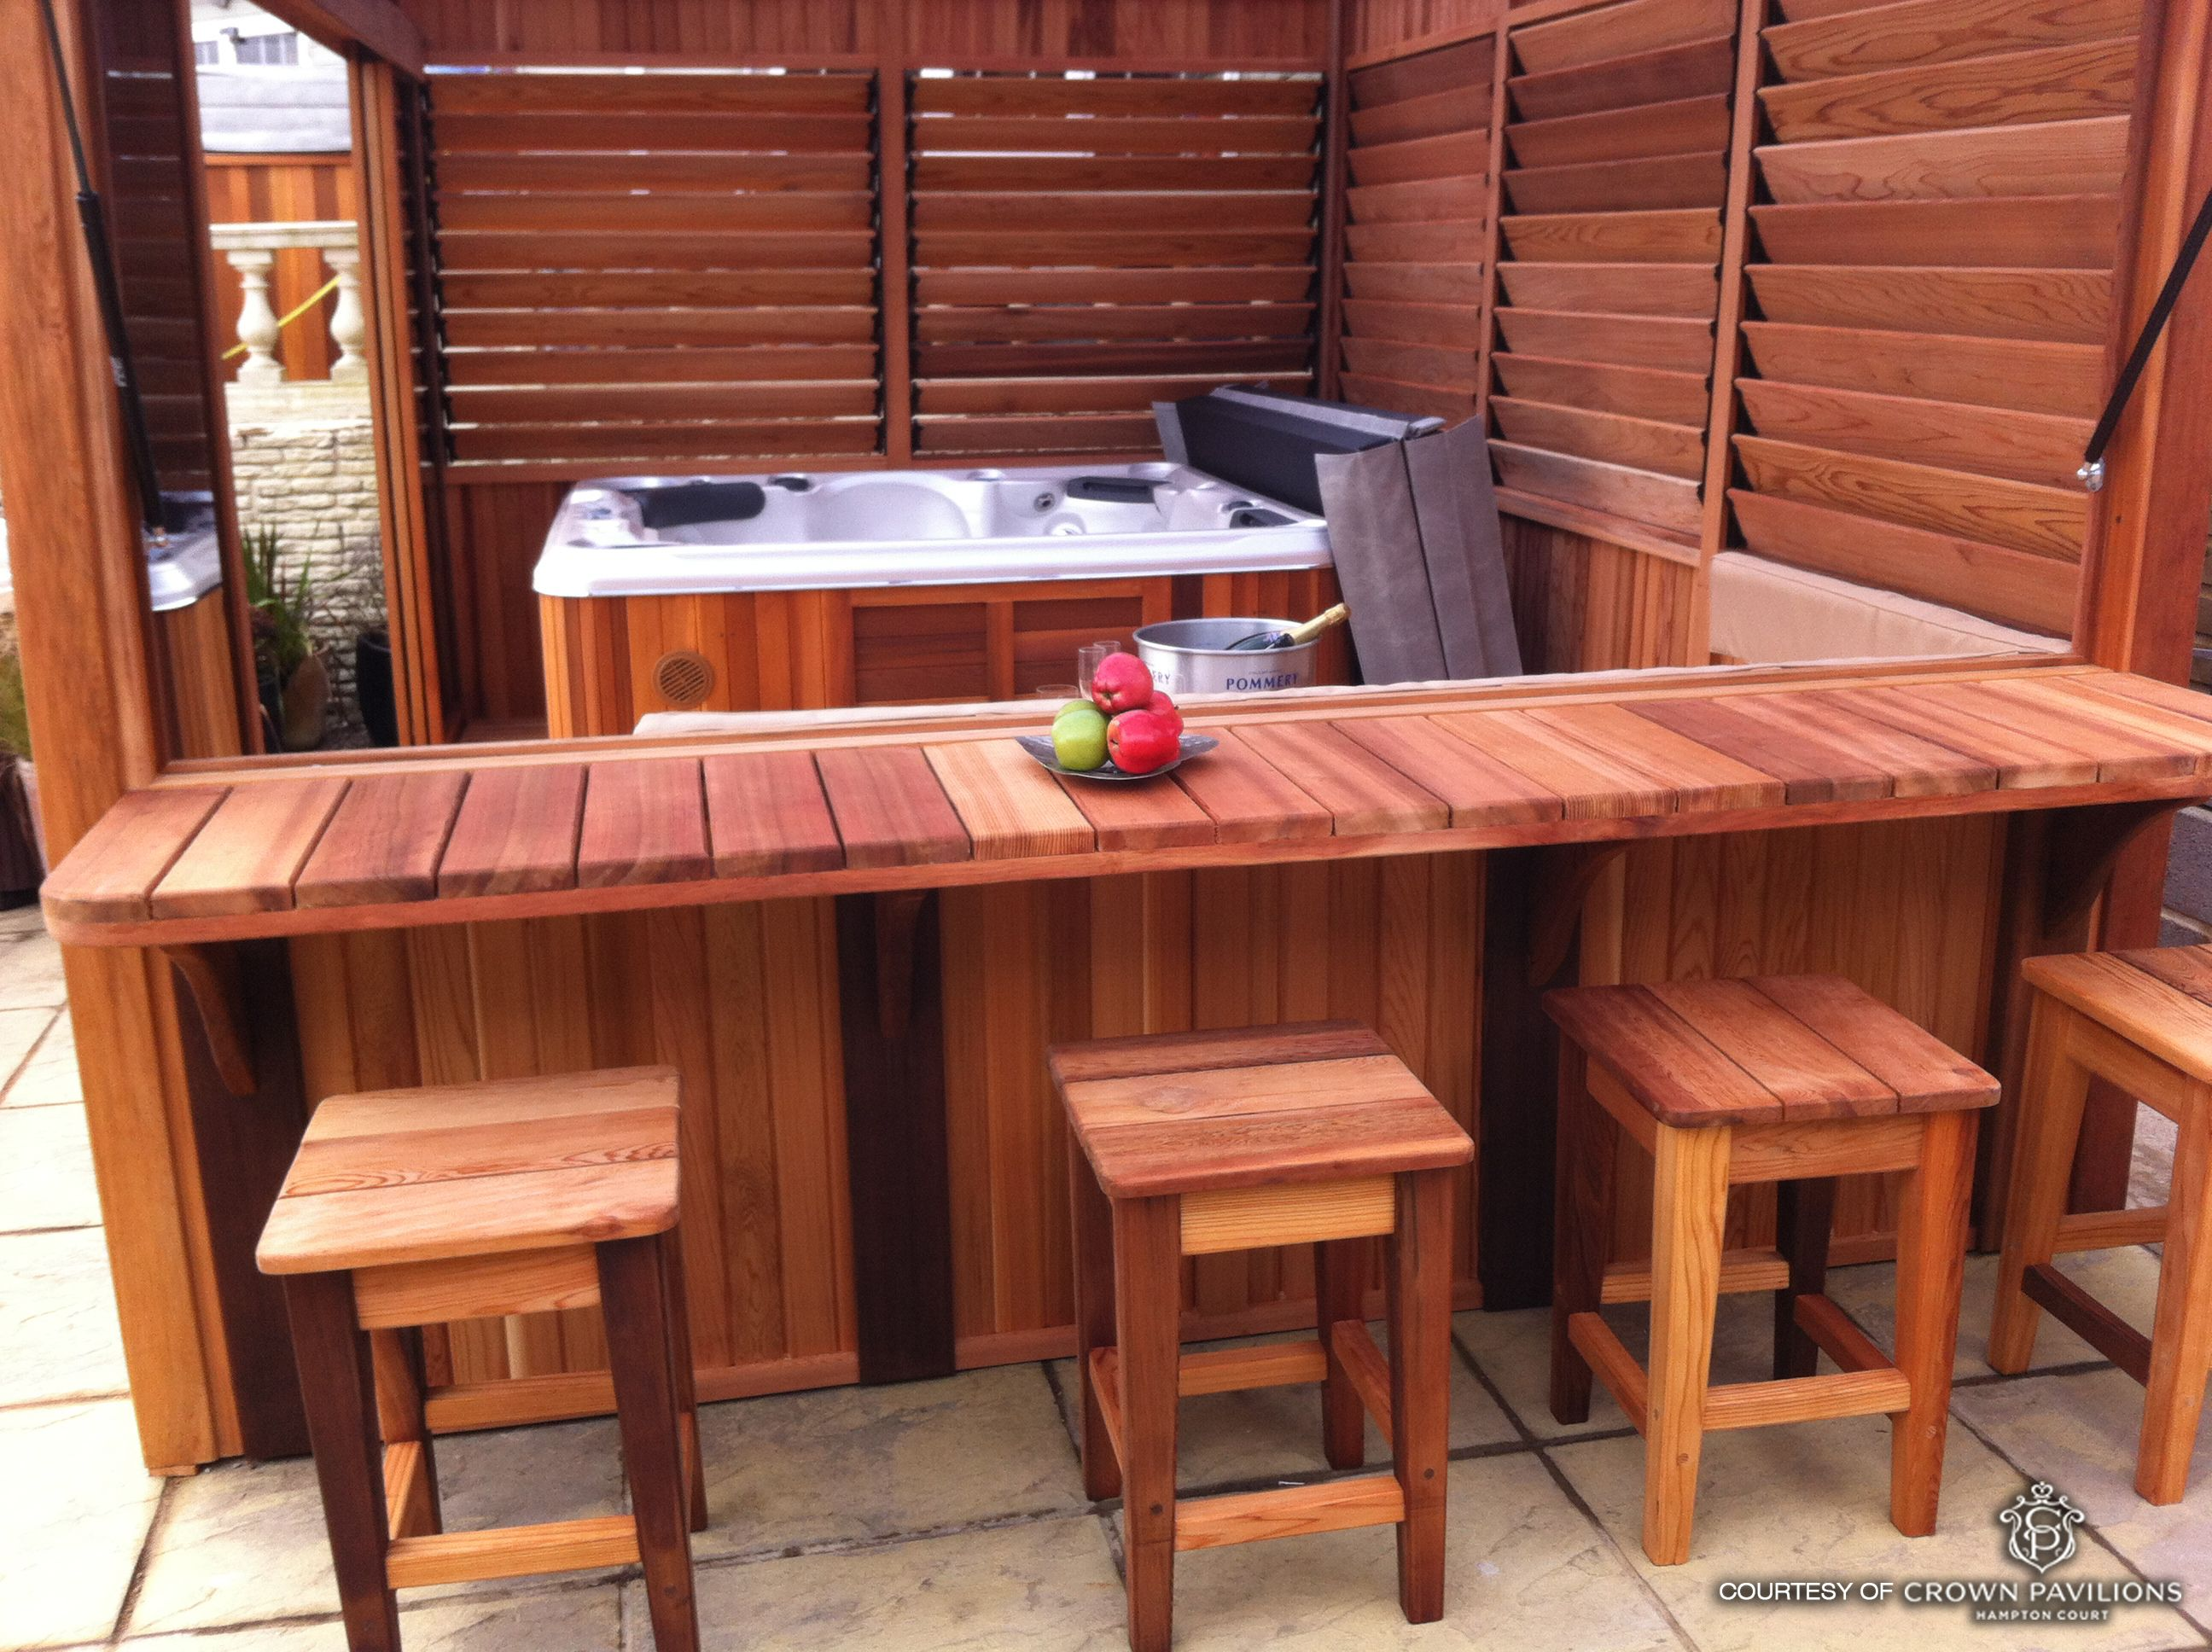 Inexpensive Diy Outdoor Hot Tub Enclosure With Bar And Louvered Panels For Extra Controlled Privacy Photo Courtesy Of Crown Pavilions